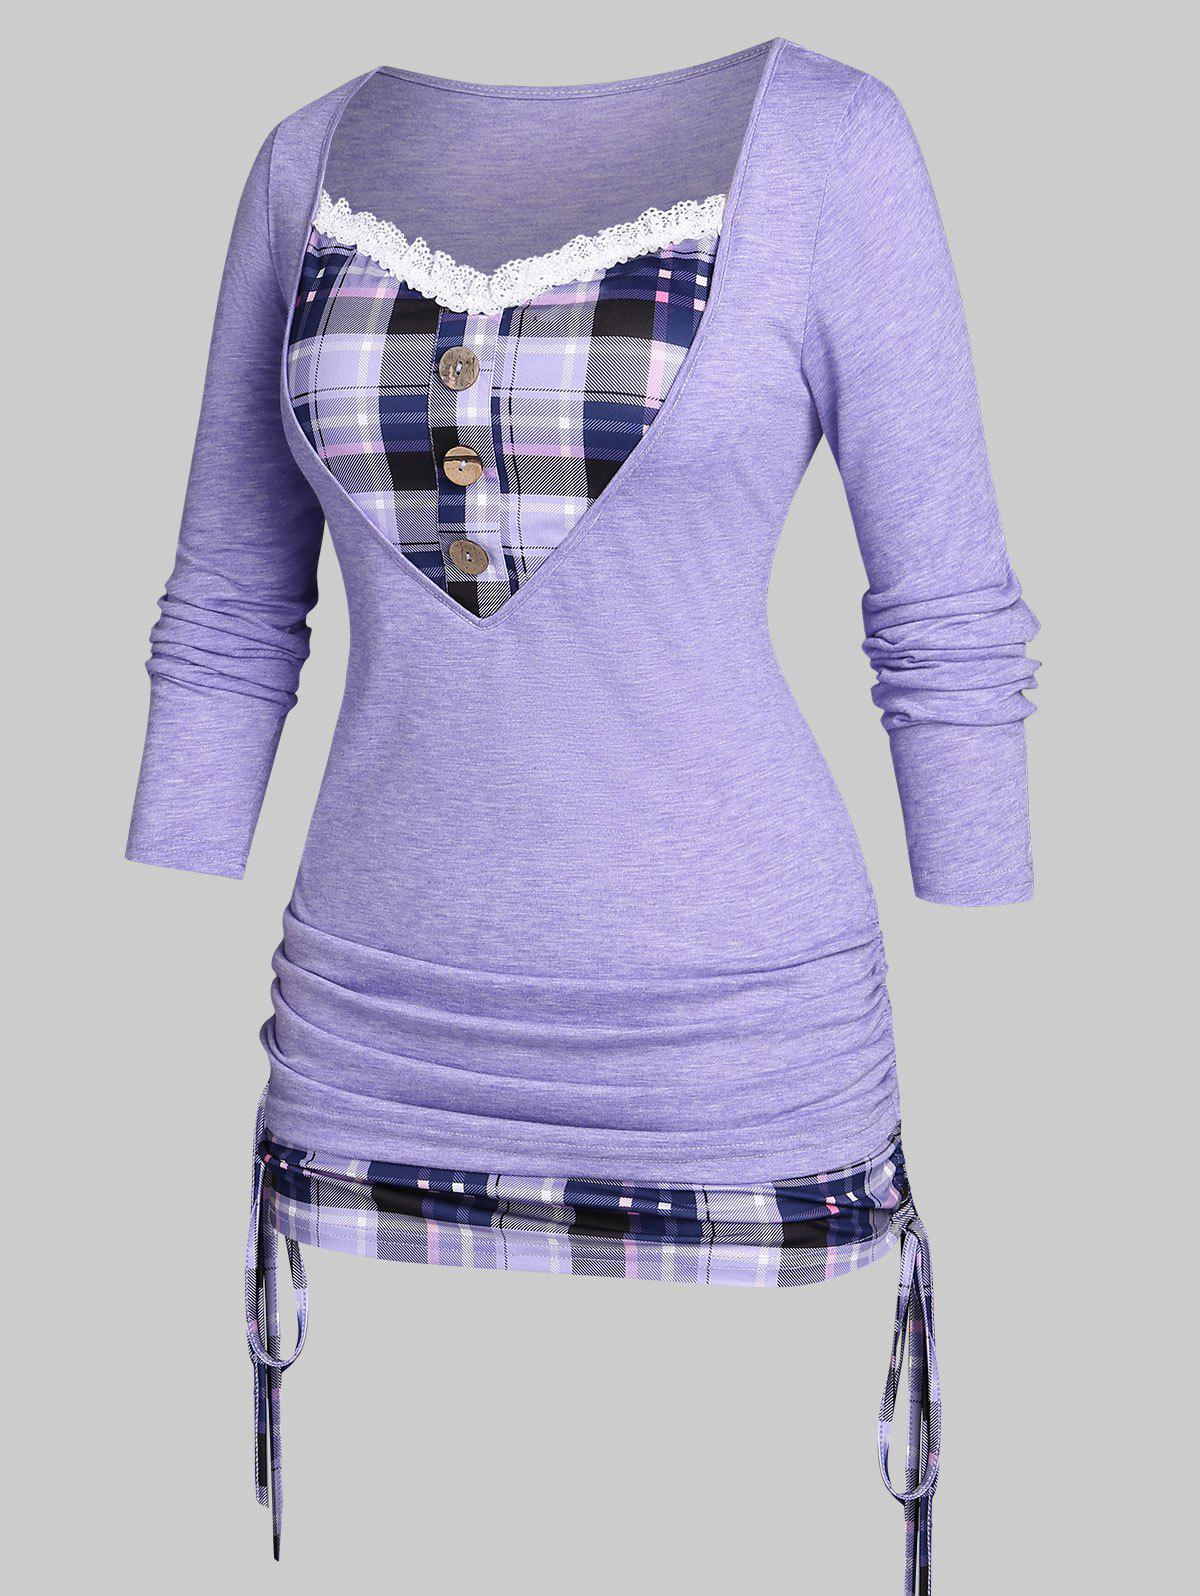 New Plus Size Cinched Plaid 2 in 1 T-shirt